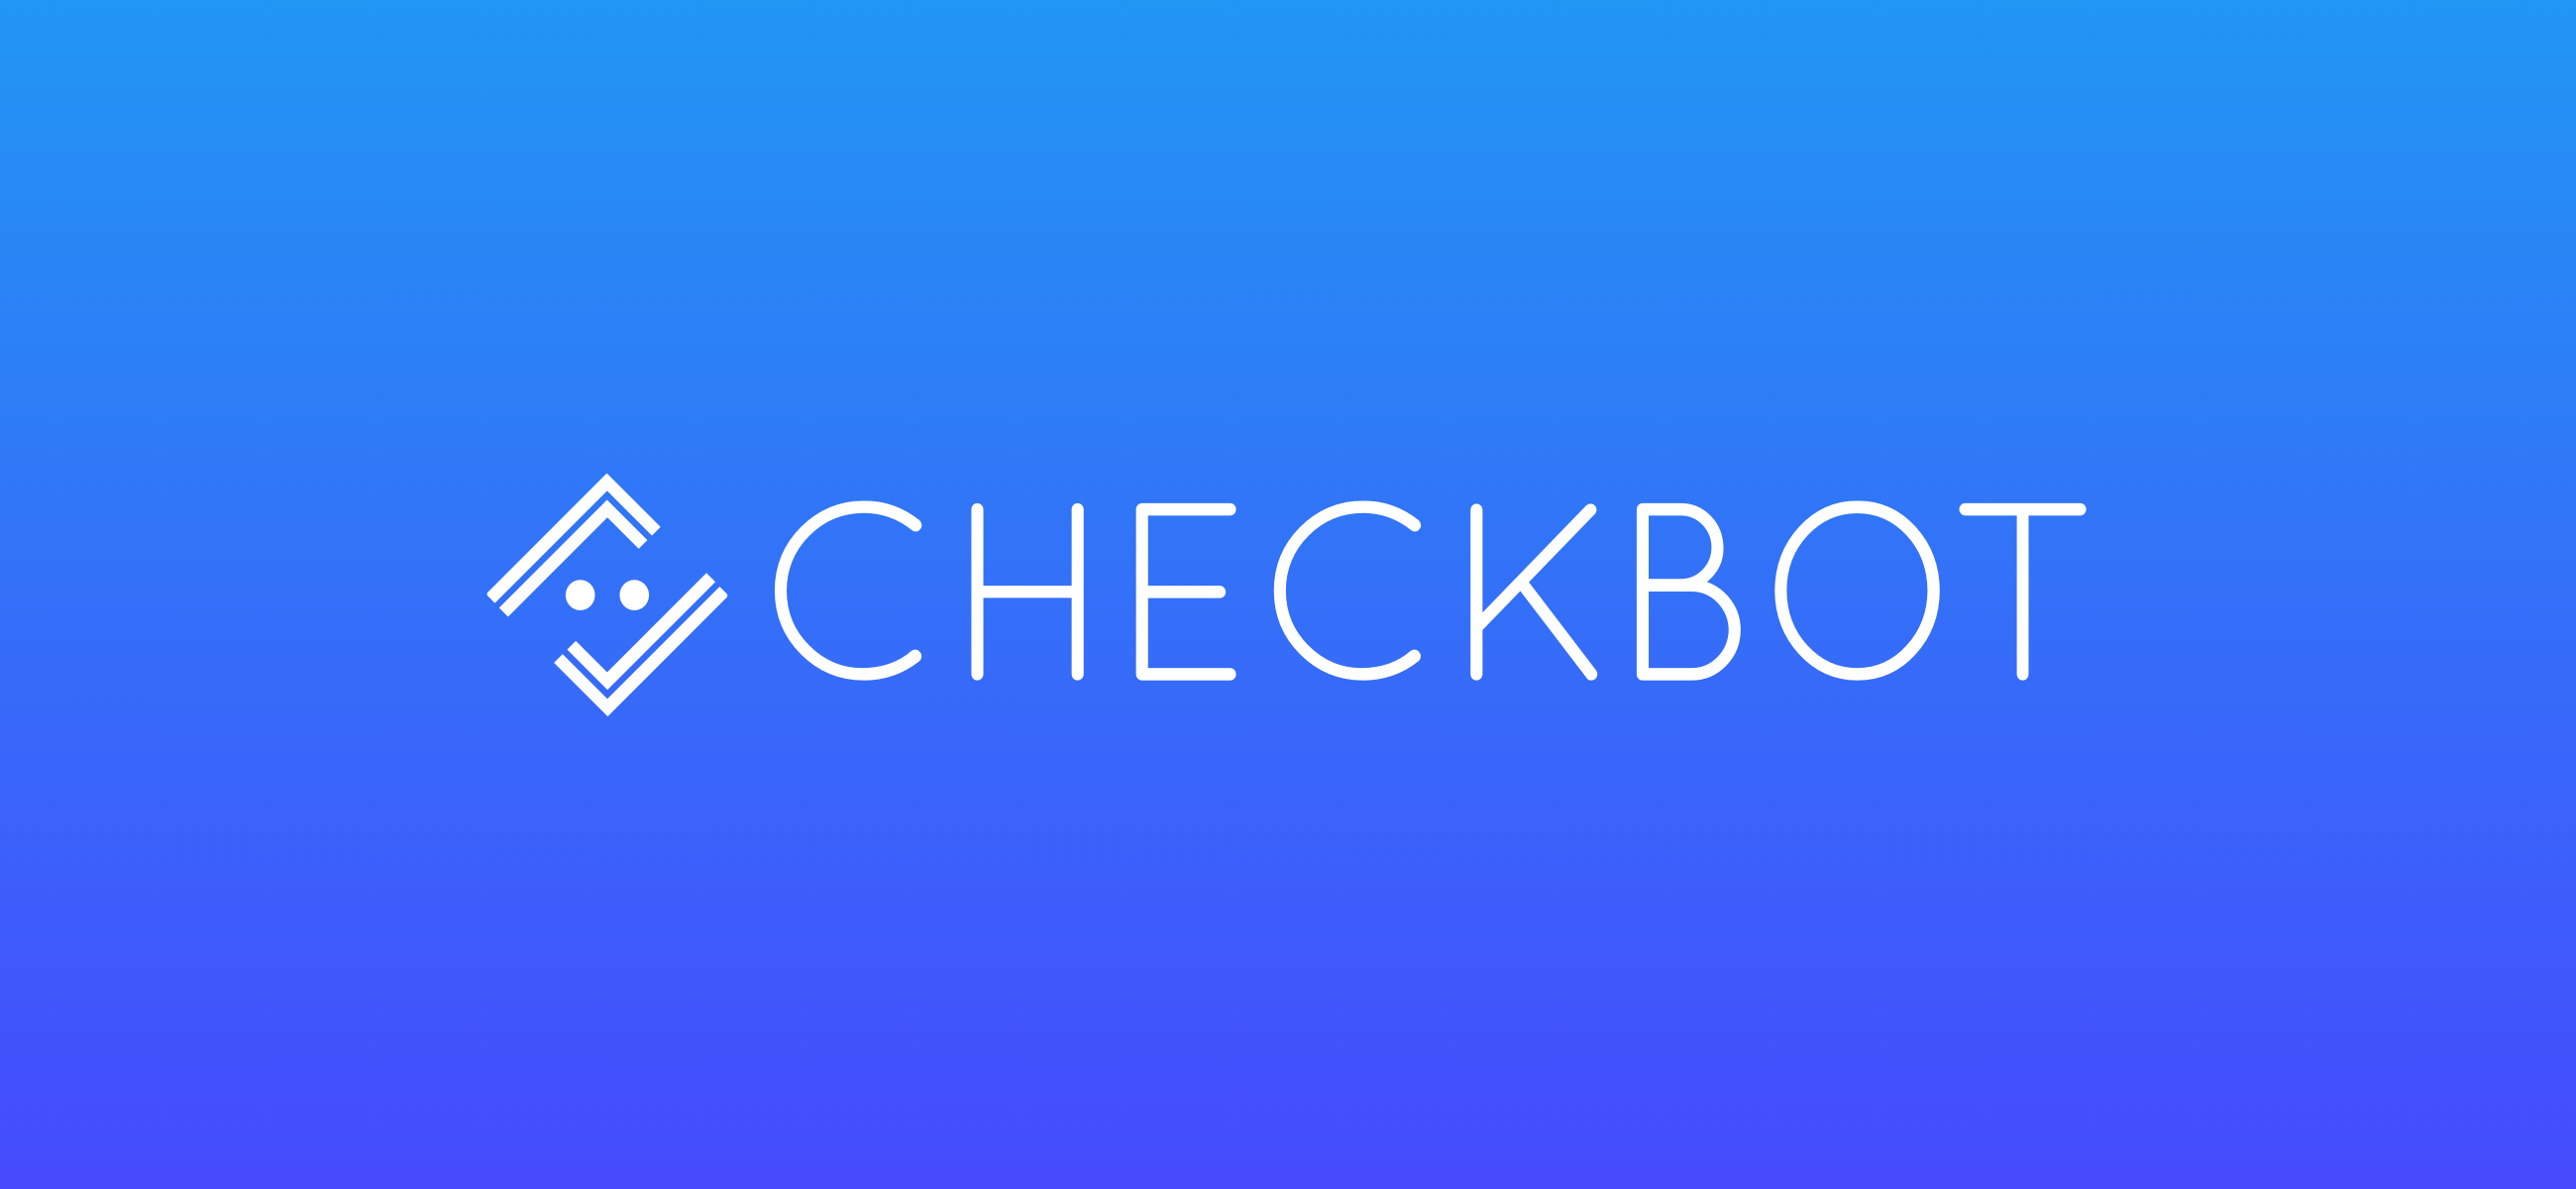 Checkbot - Best Plugins For Chrome